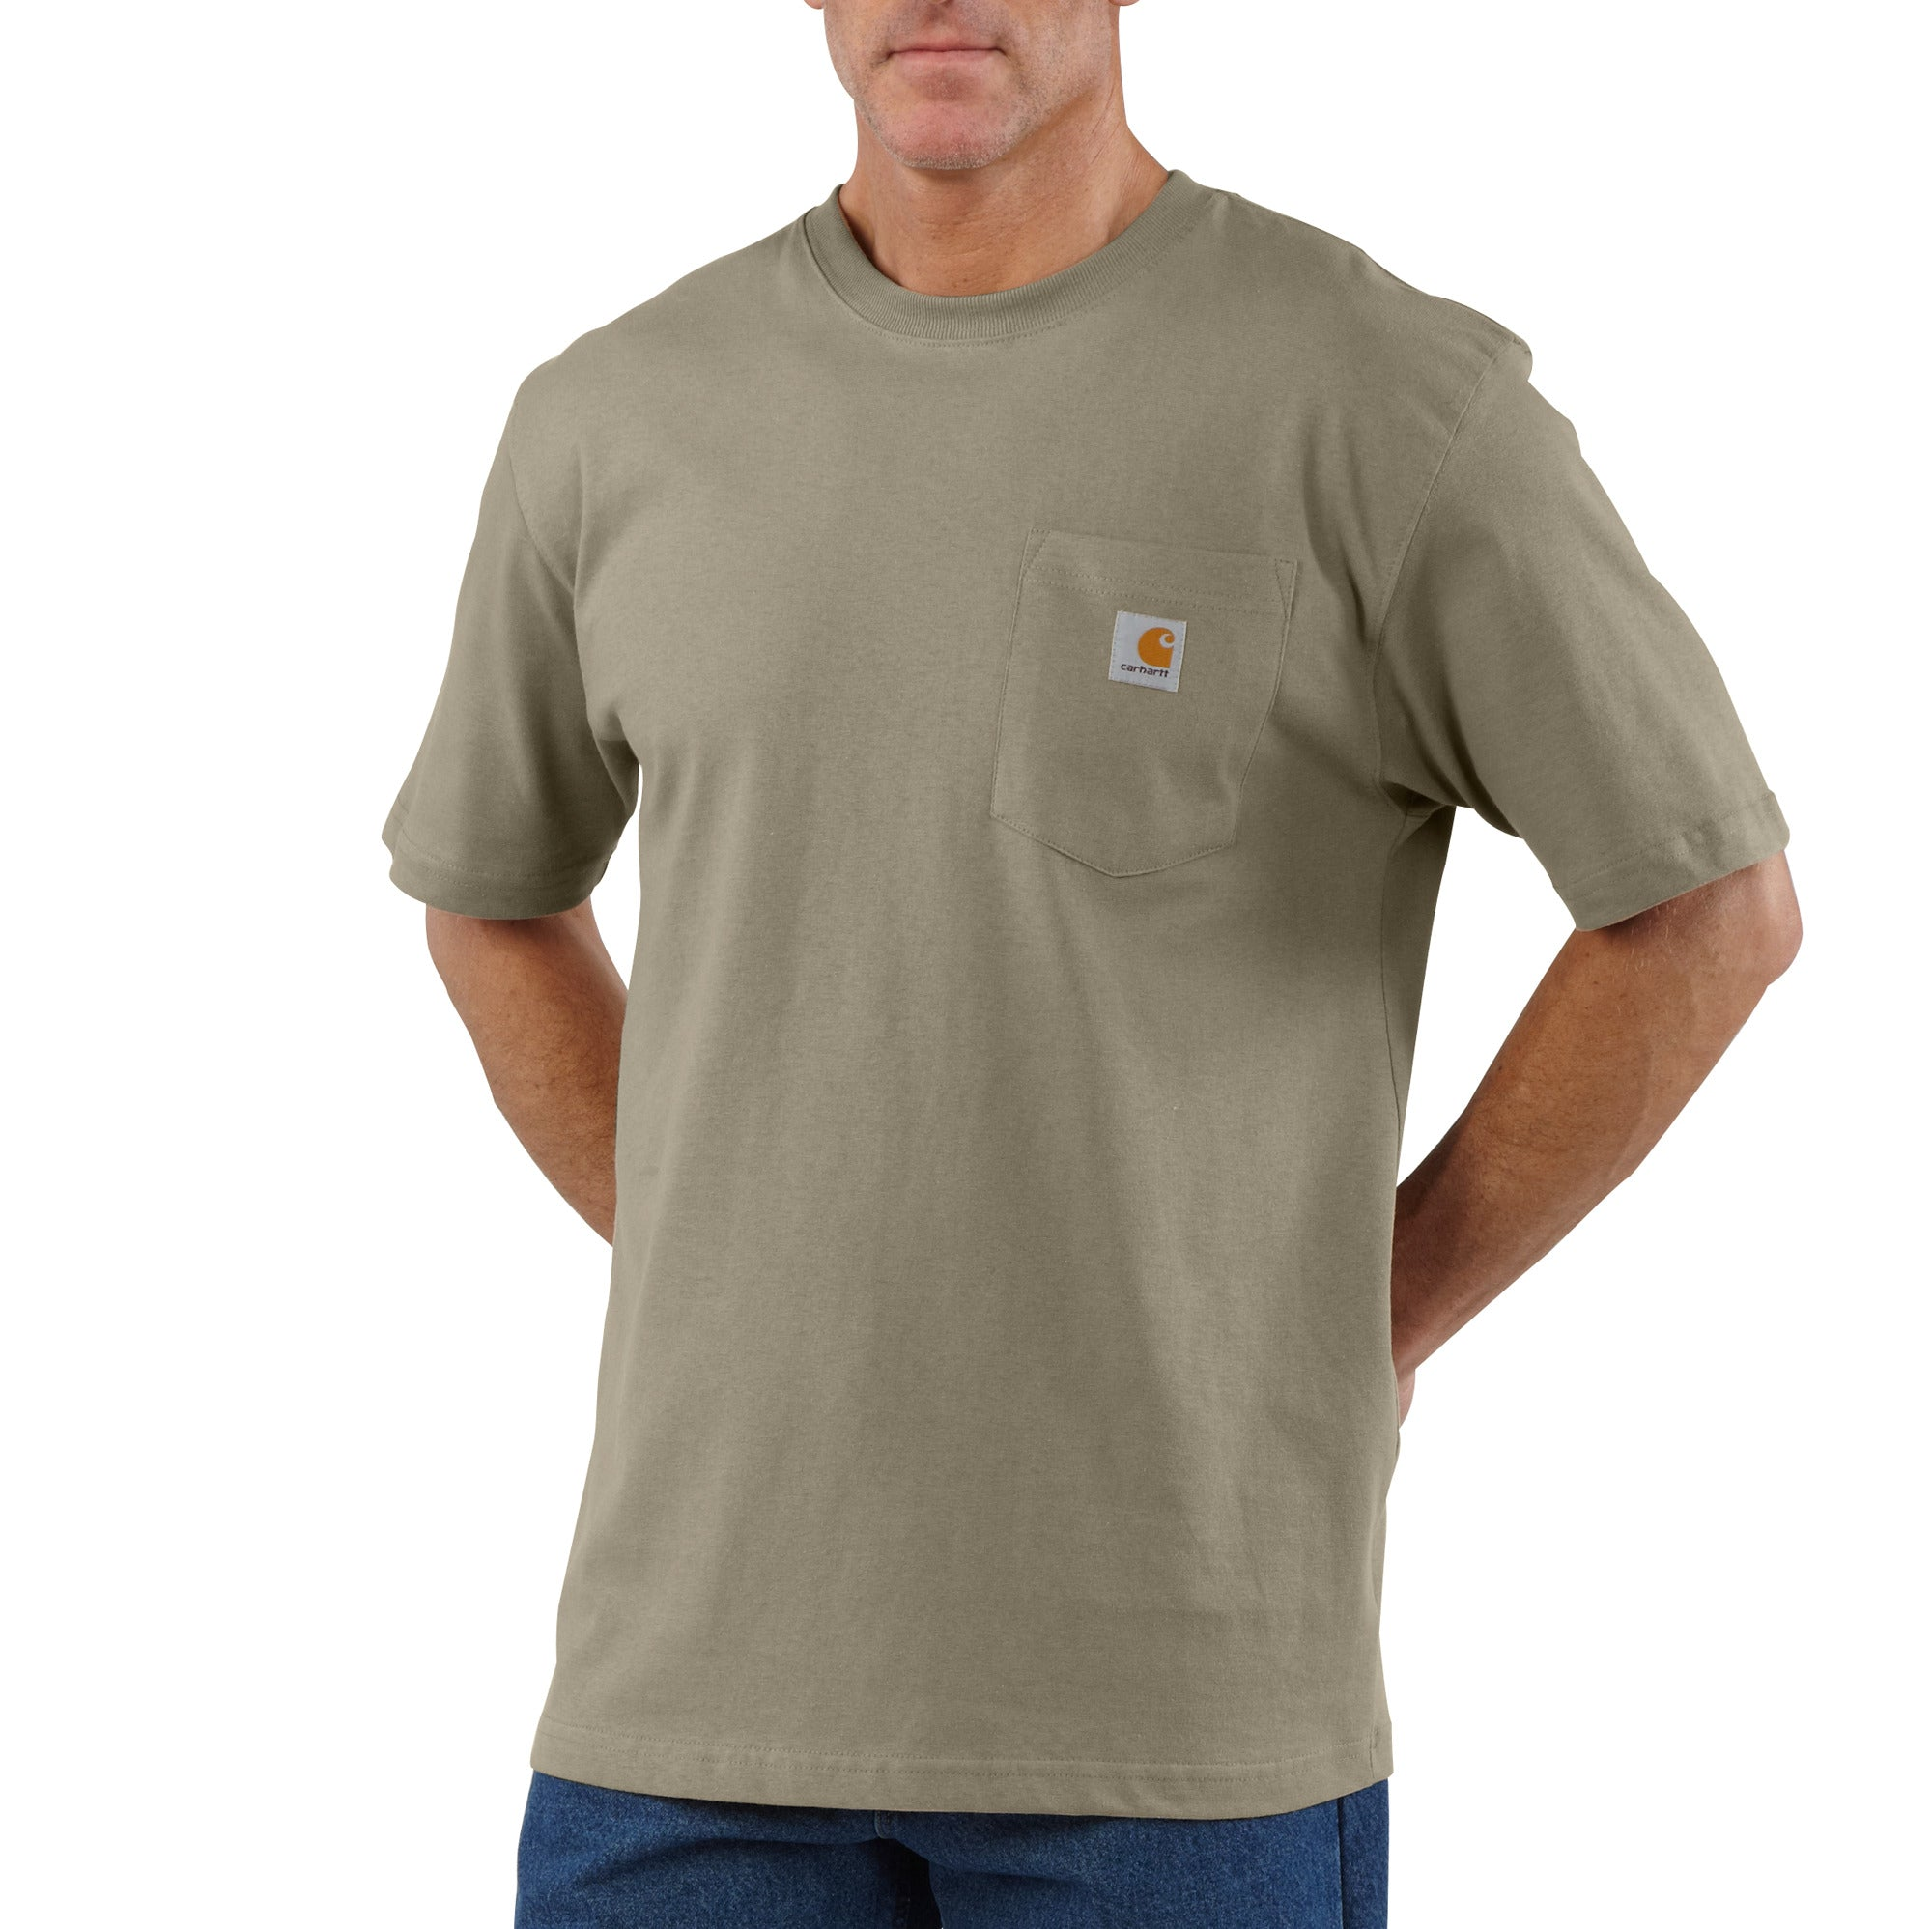 'Carhartt' Men's Workwear Heavyweight Pocket T-Shirt - Desert